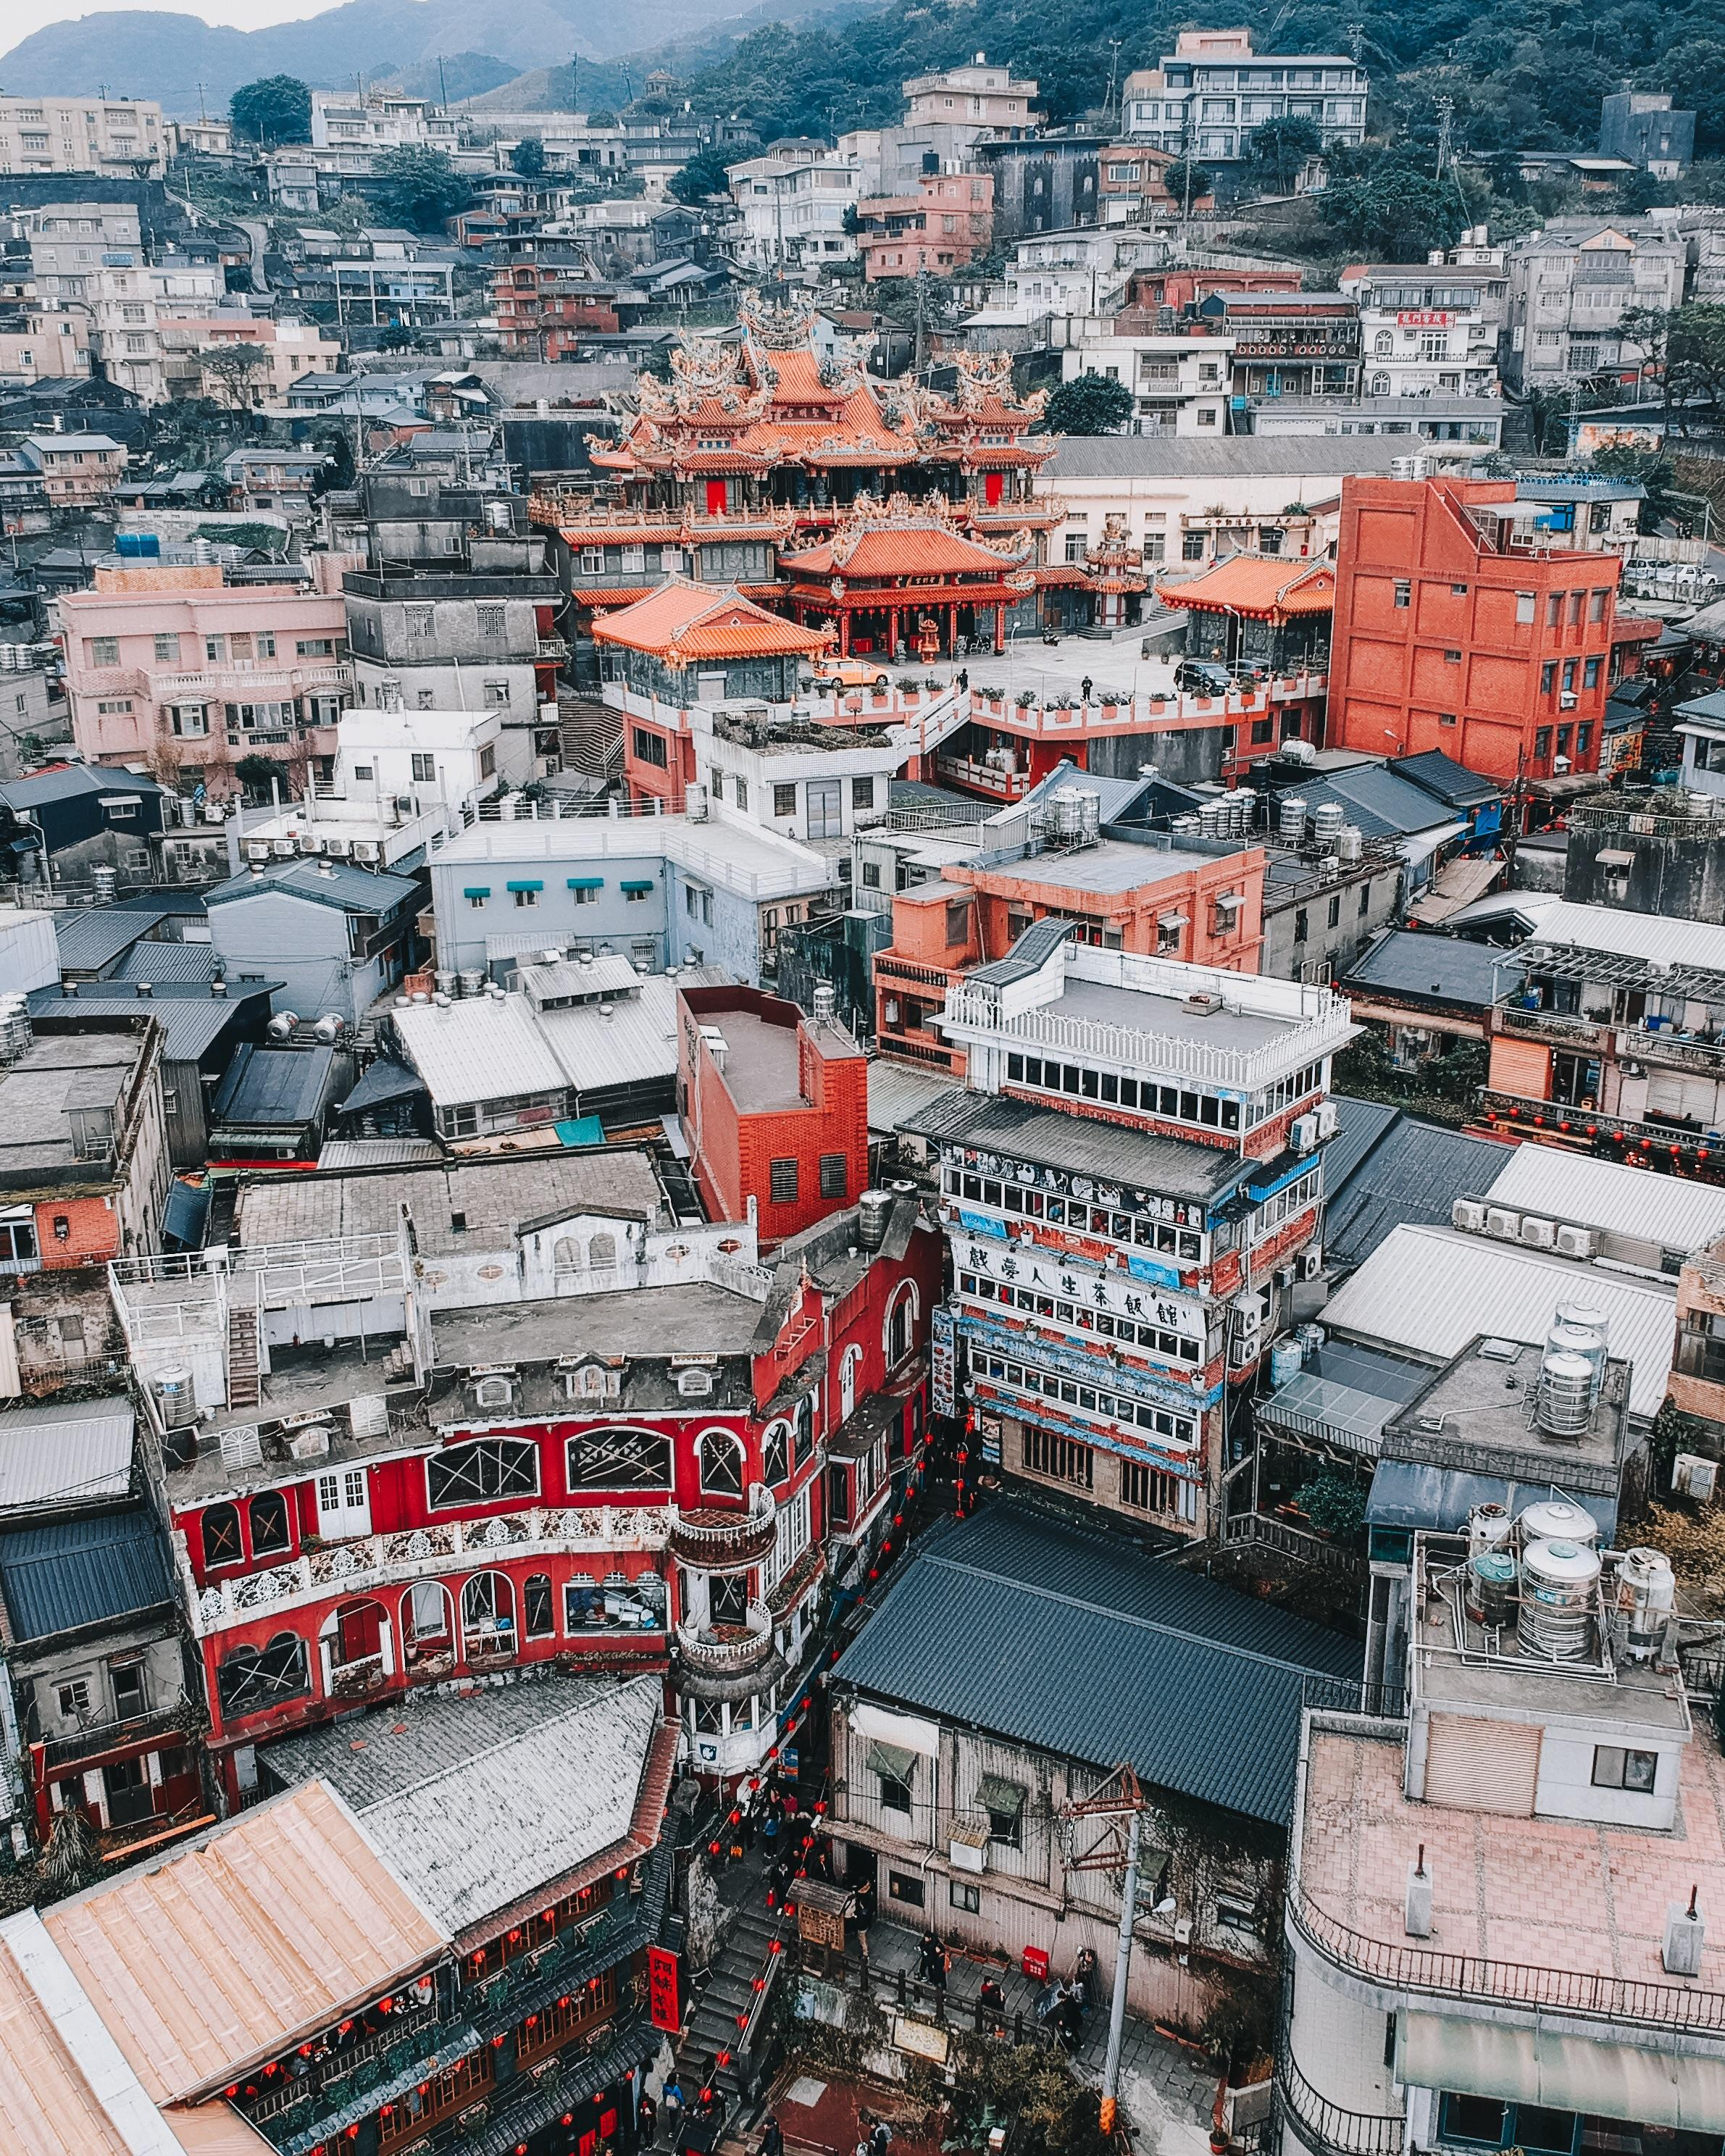 Jiufen from above. (Image by Instagram user @thefuryandsound)